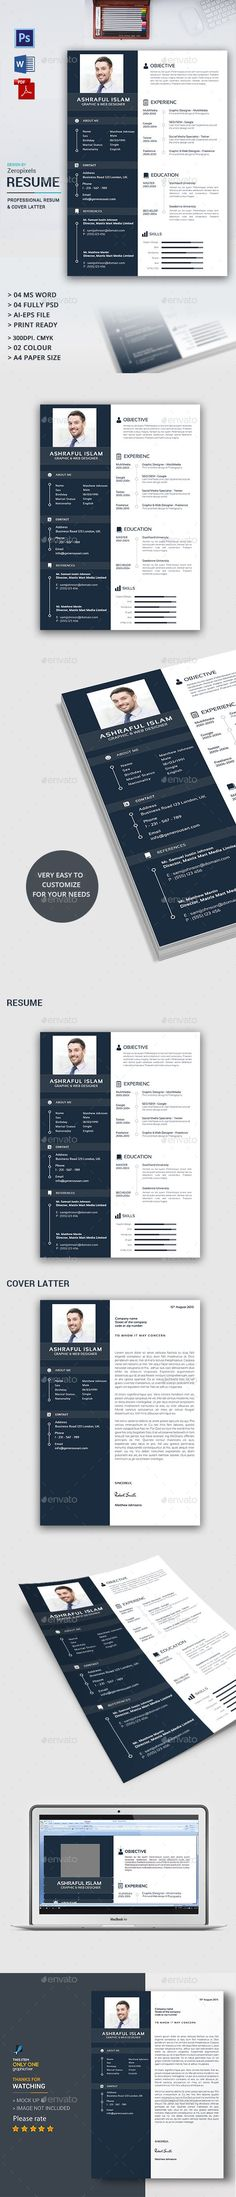 12 best OnePager images on Pinterest | Page layout, Flyer design and ...